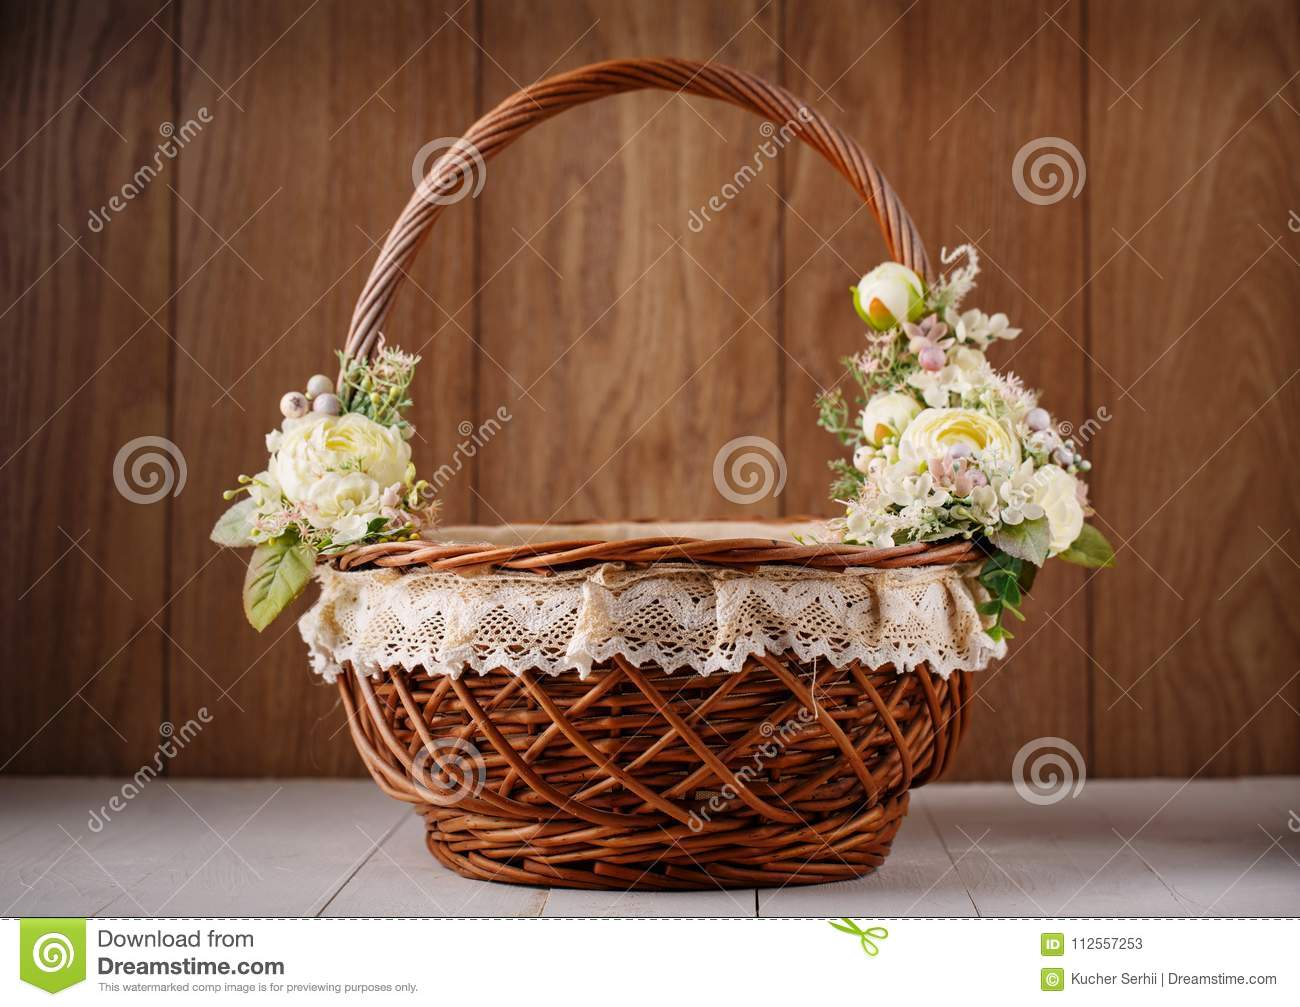 Designer Basket Is Decorated With Flowers. Wicker Basket For ...